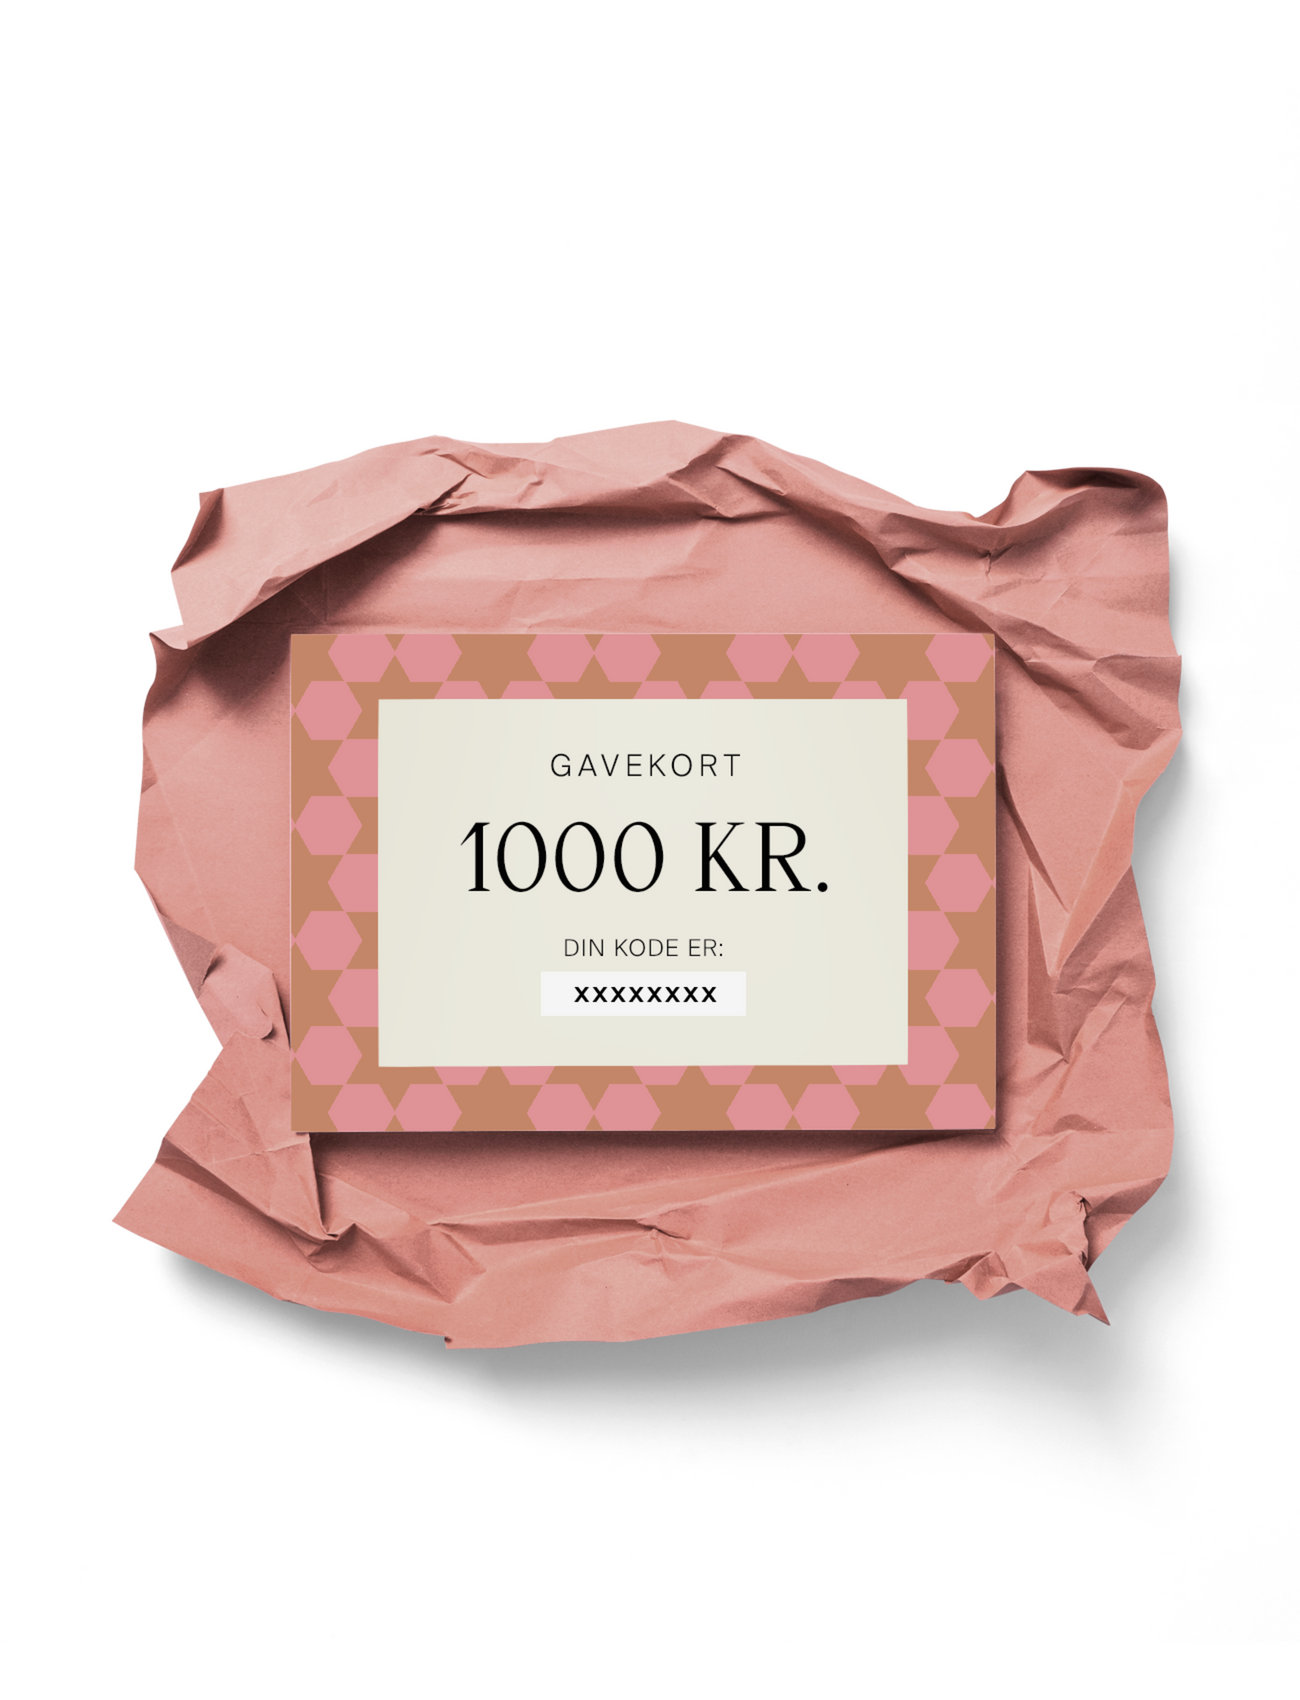 Boozt Gift - Gift card - gift cards - dkk 1000 - 0